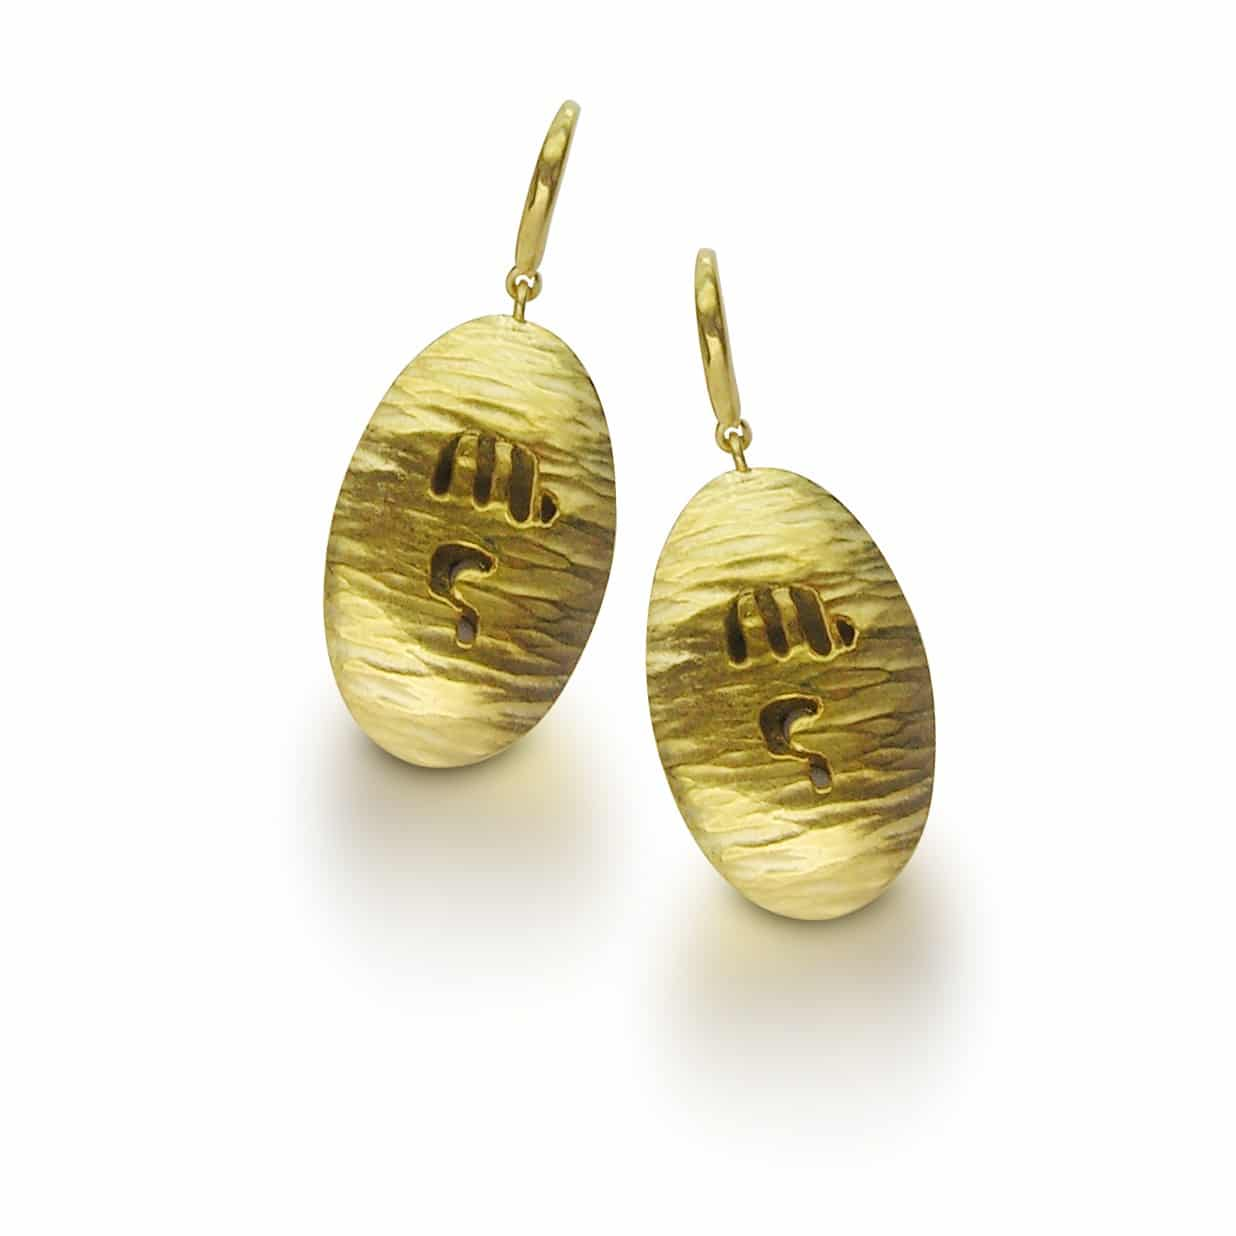 24K Gold-Plated on 925 Sterling Silver earrings